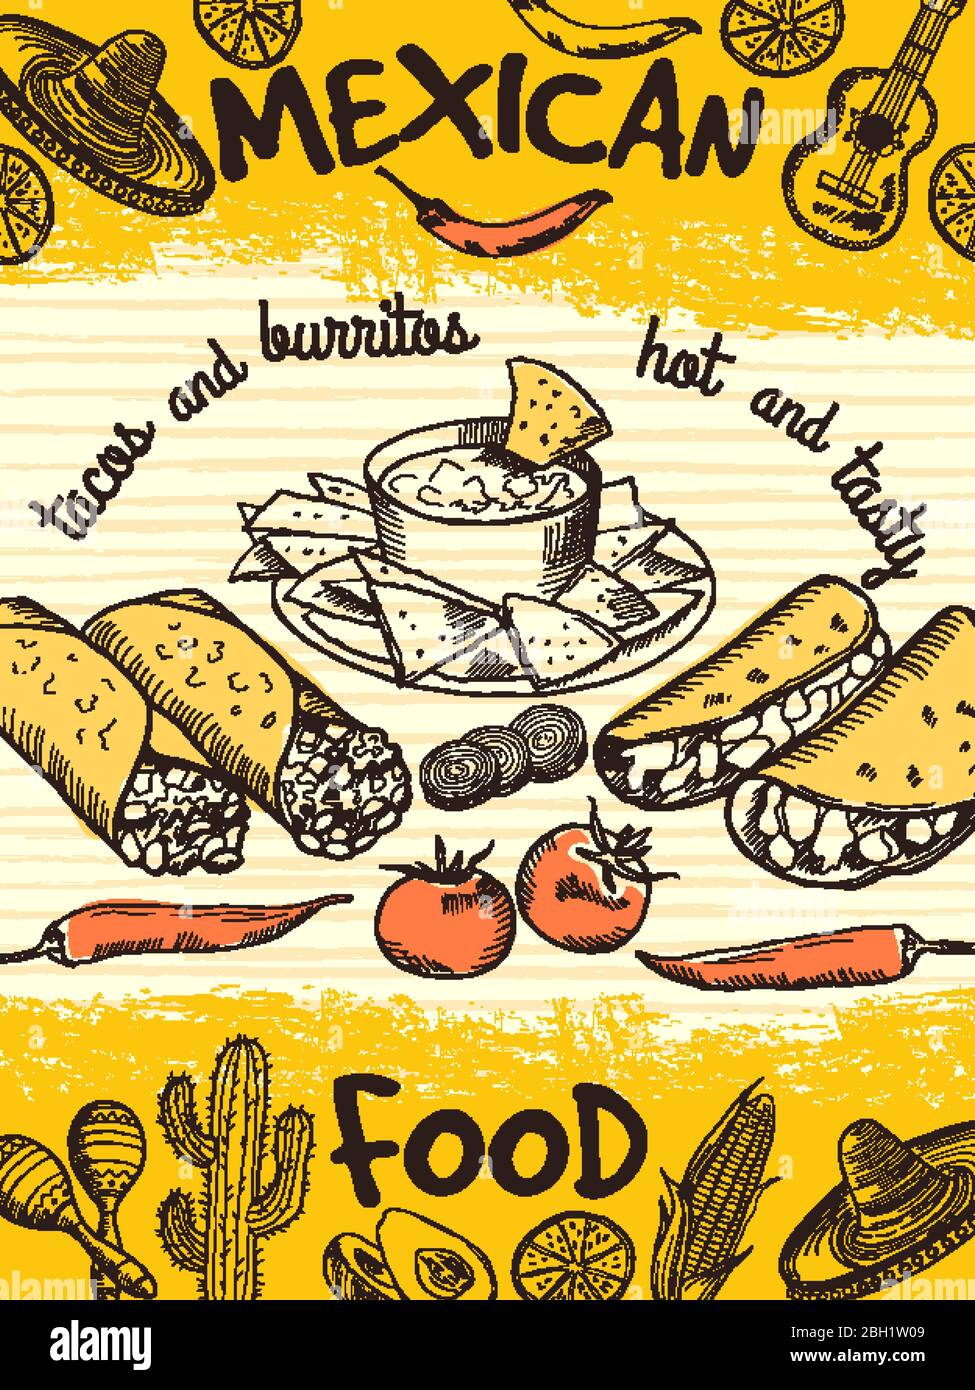 Design Template Of Poster With Mexican Food Vintage Banner Mexican Food Restaurant Banner Flyer Vector Illustration Stock Vector Image Art Alamy